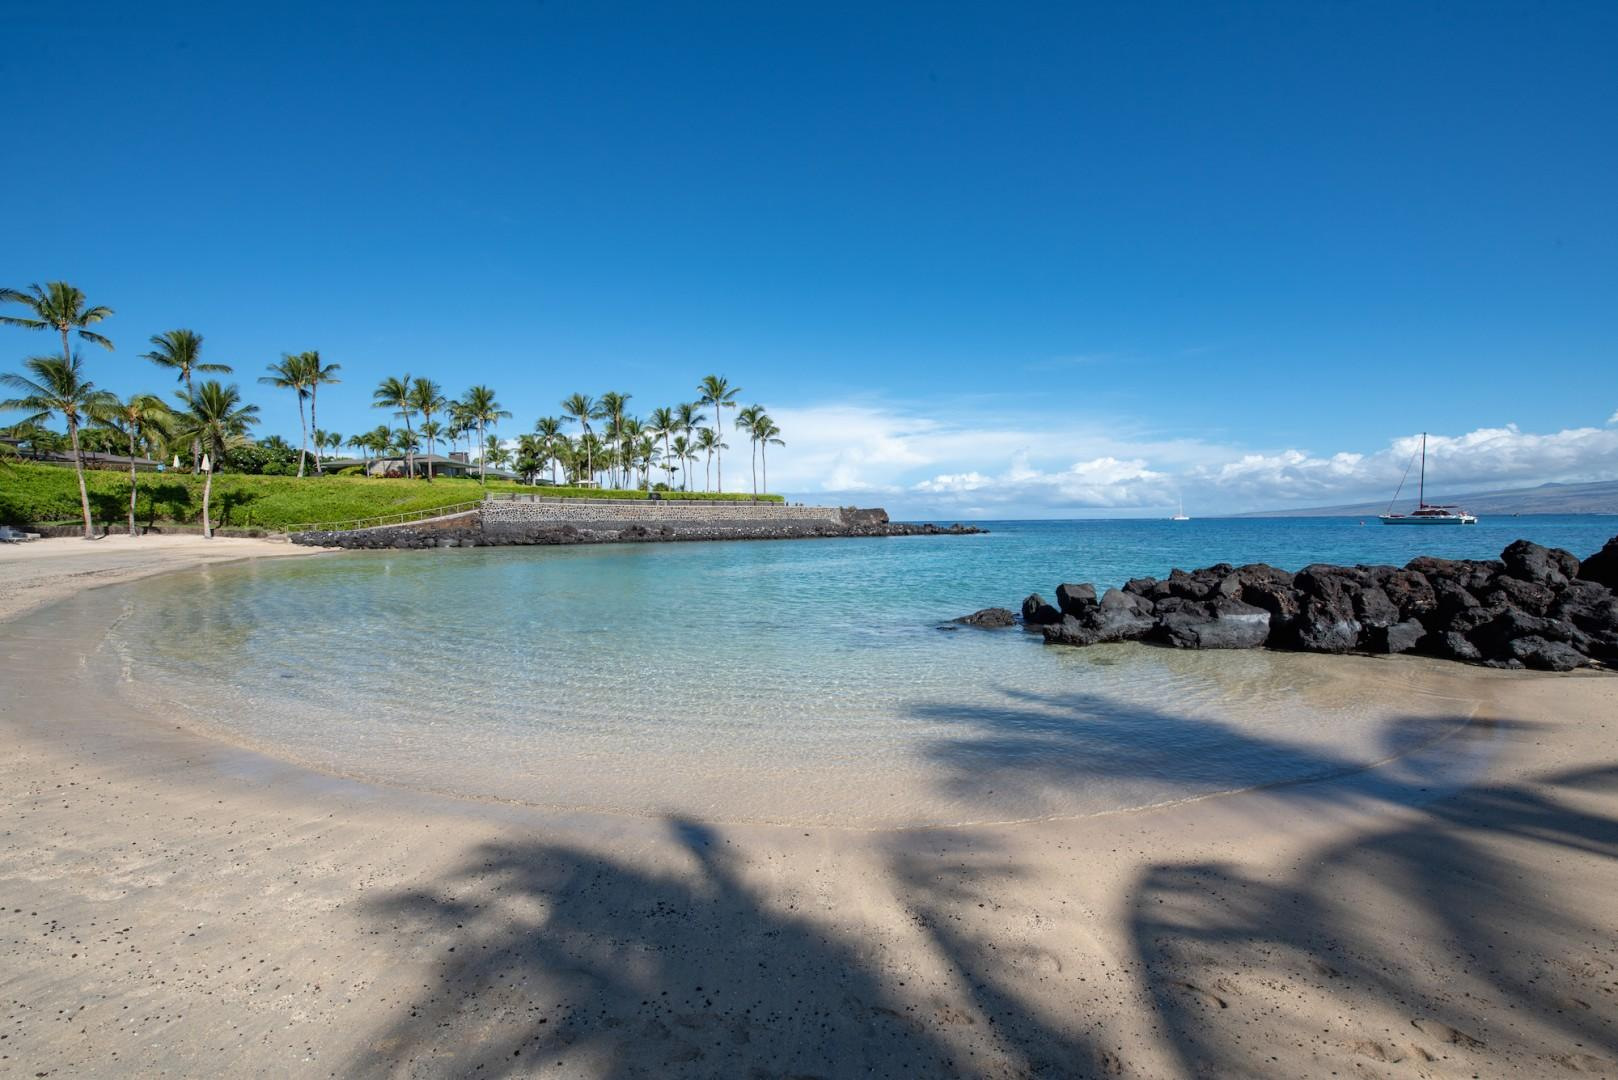 This Kohala Coast vacation home on the Big Island of Hawaii allows easy access (5 minutes drive) to the white sands of magnificent Mauna Lani Beach and the exclusive Mauna Lani Beach Club